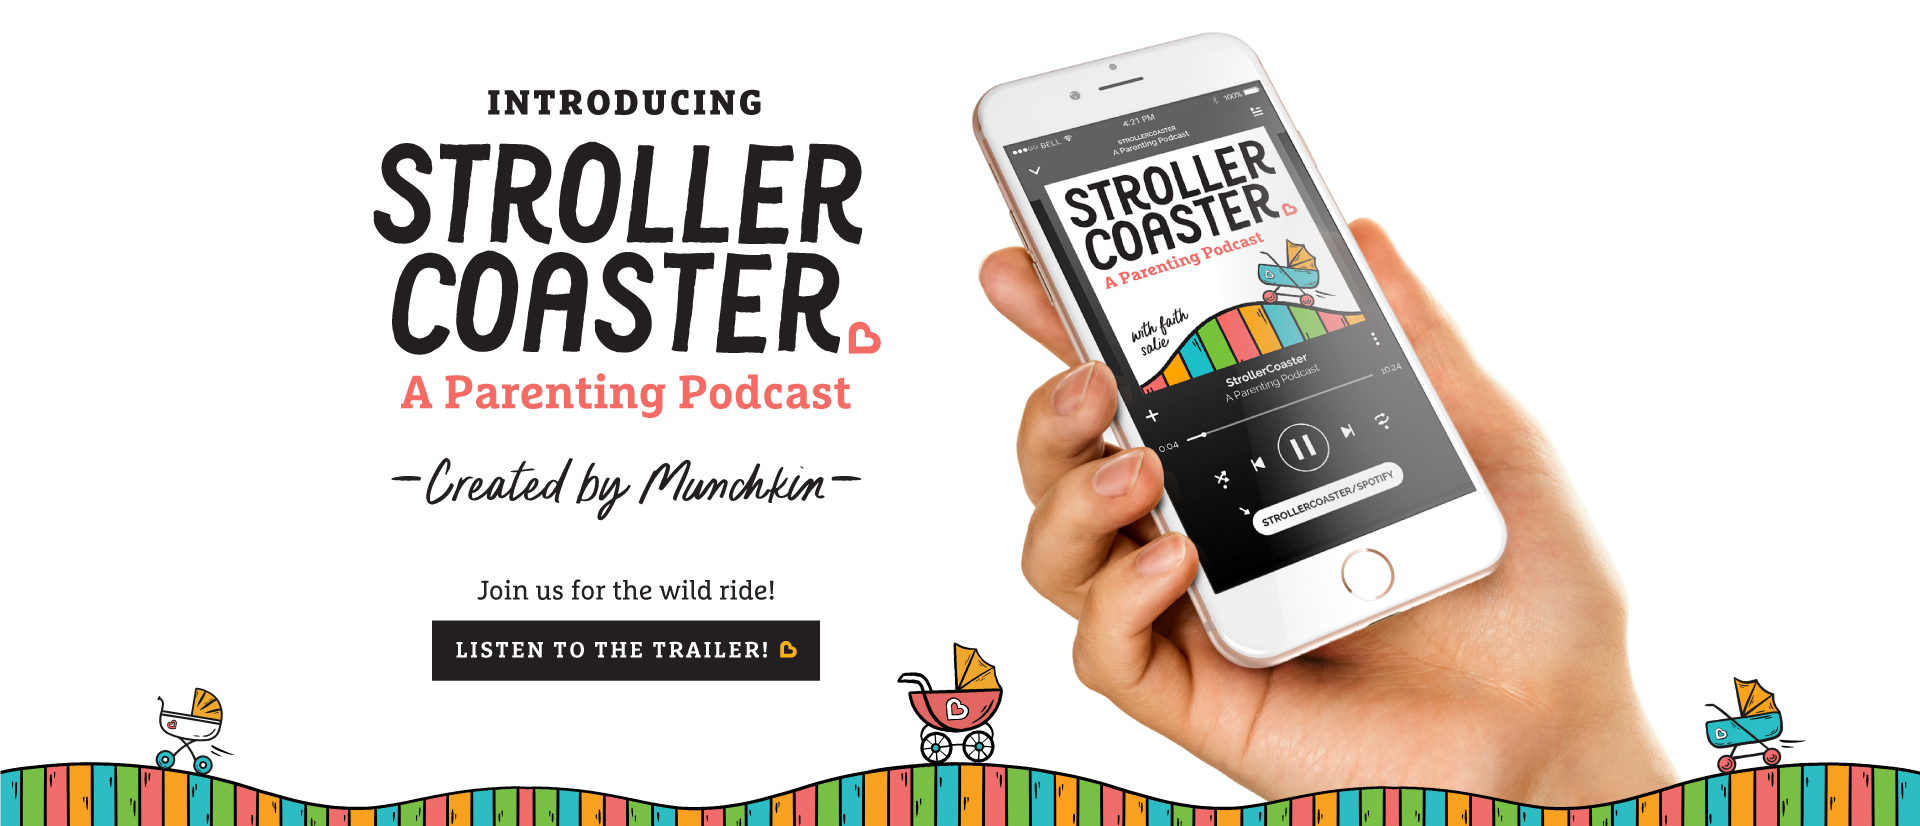 Introducing Stroller Coaster A Parenting Podcast